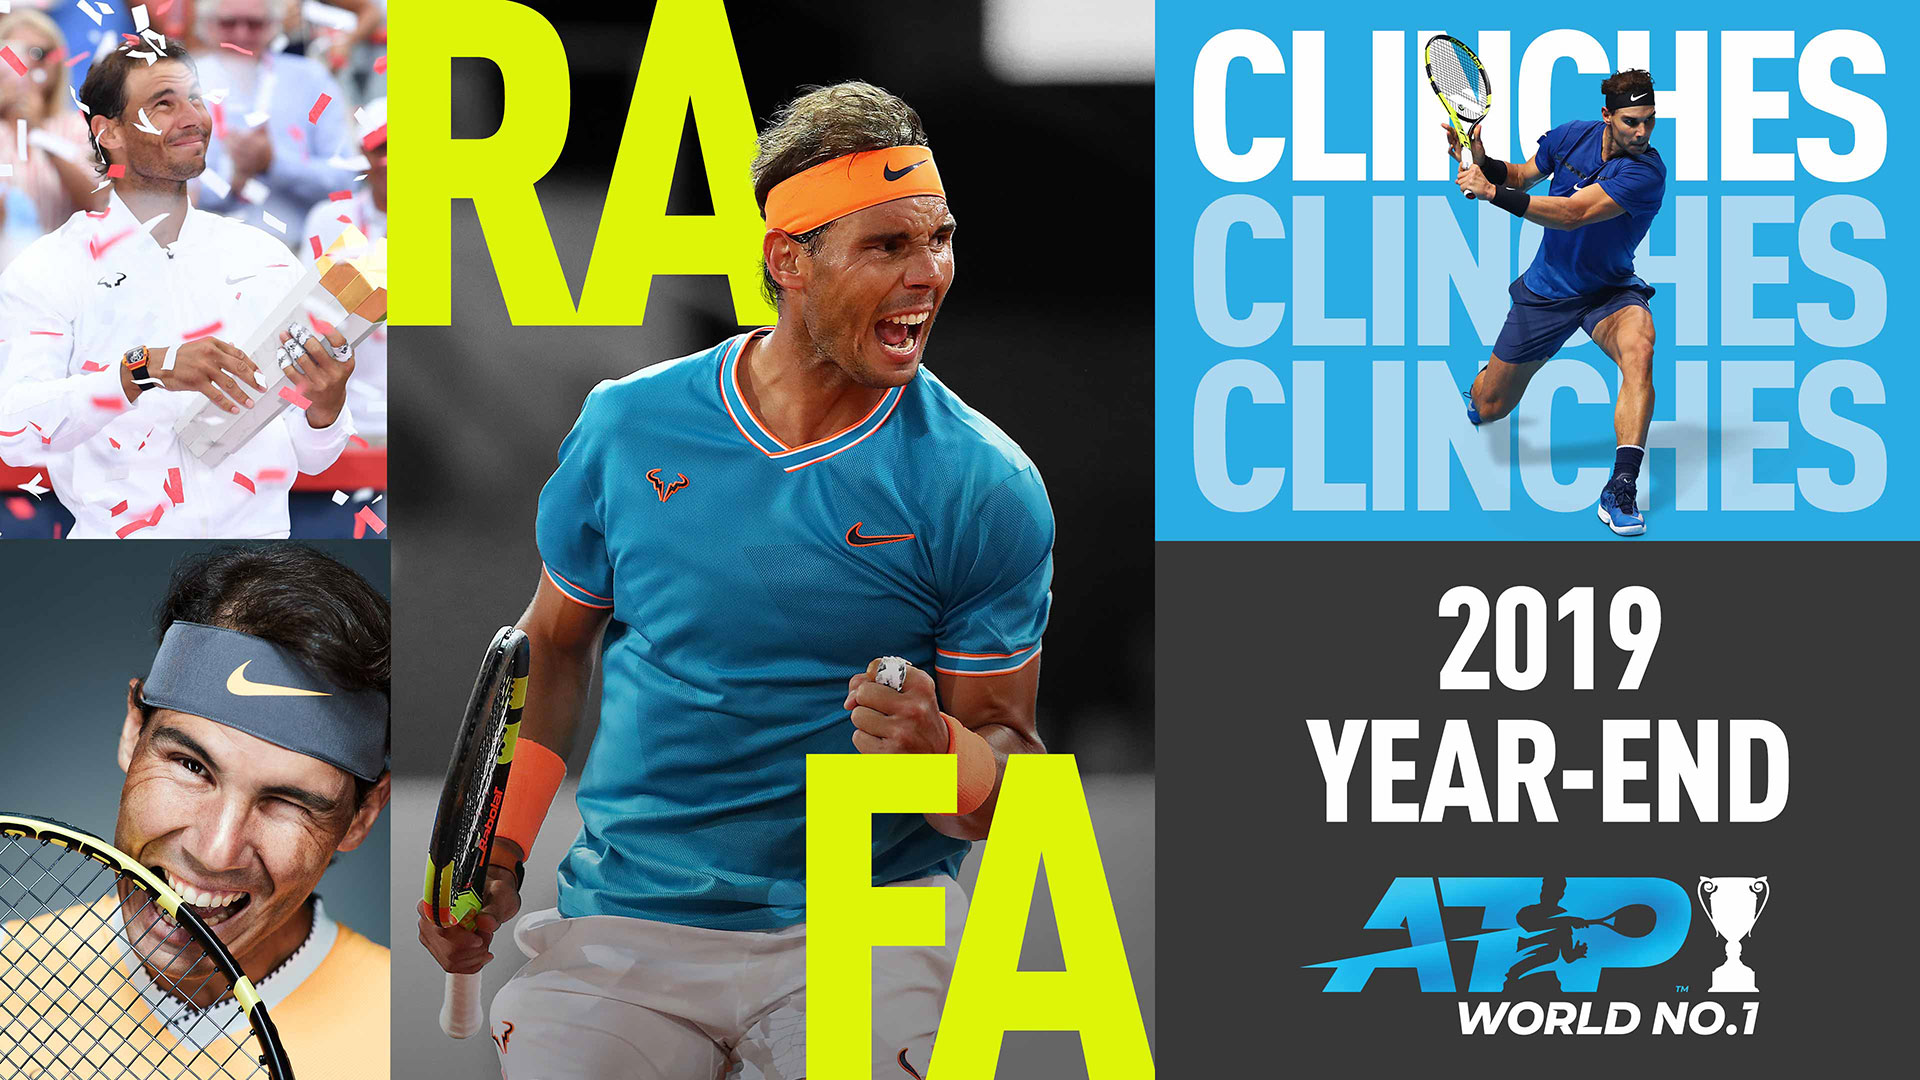 Rafael Nadal clinches the year-end No. 1 ATP Ranking for a fifth time in 2019.